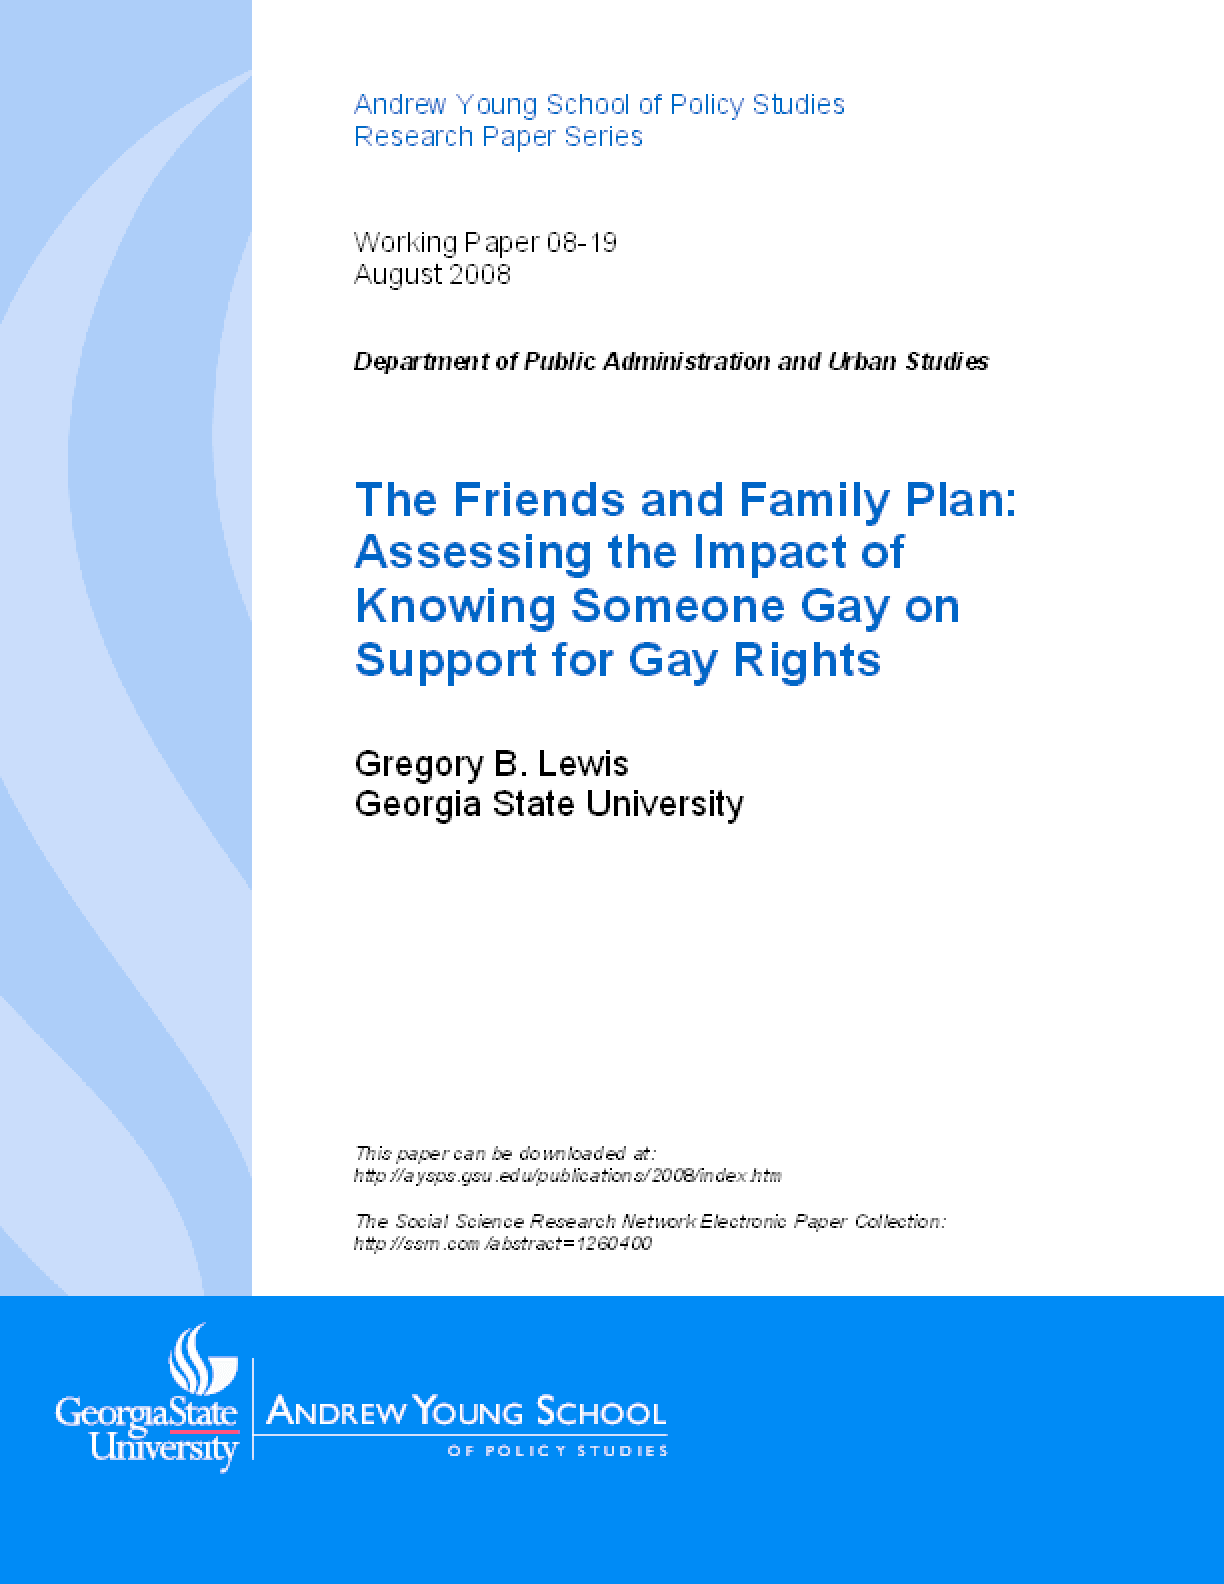 The Friends and Family Plan: Assessing the Impact of Knowing Someone Gay on Support for Gay Rights